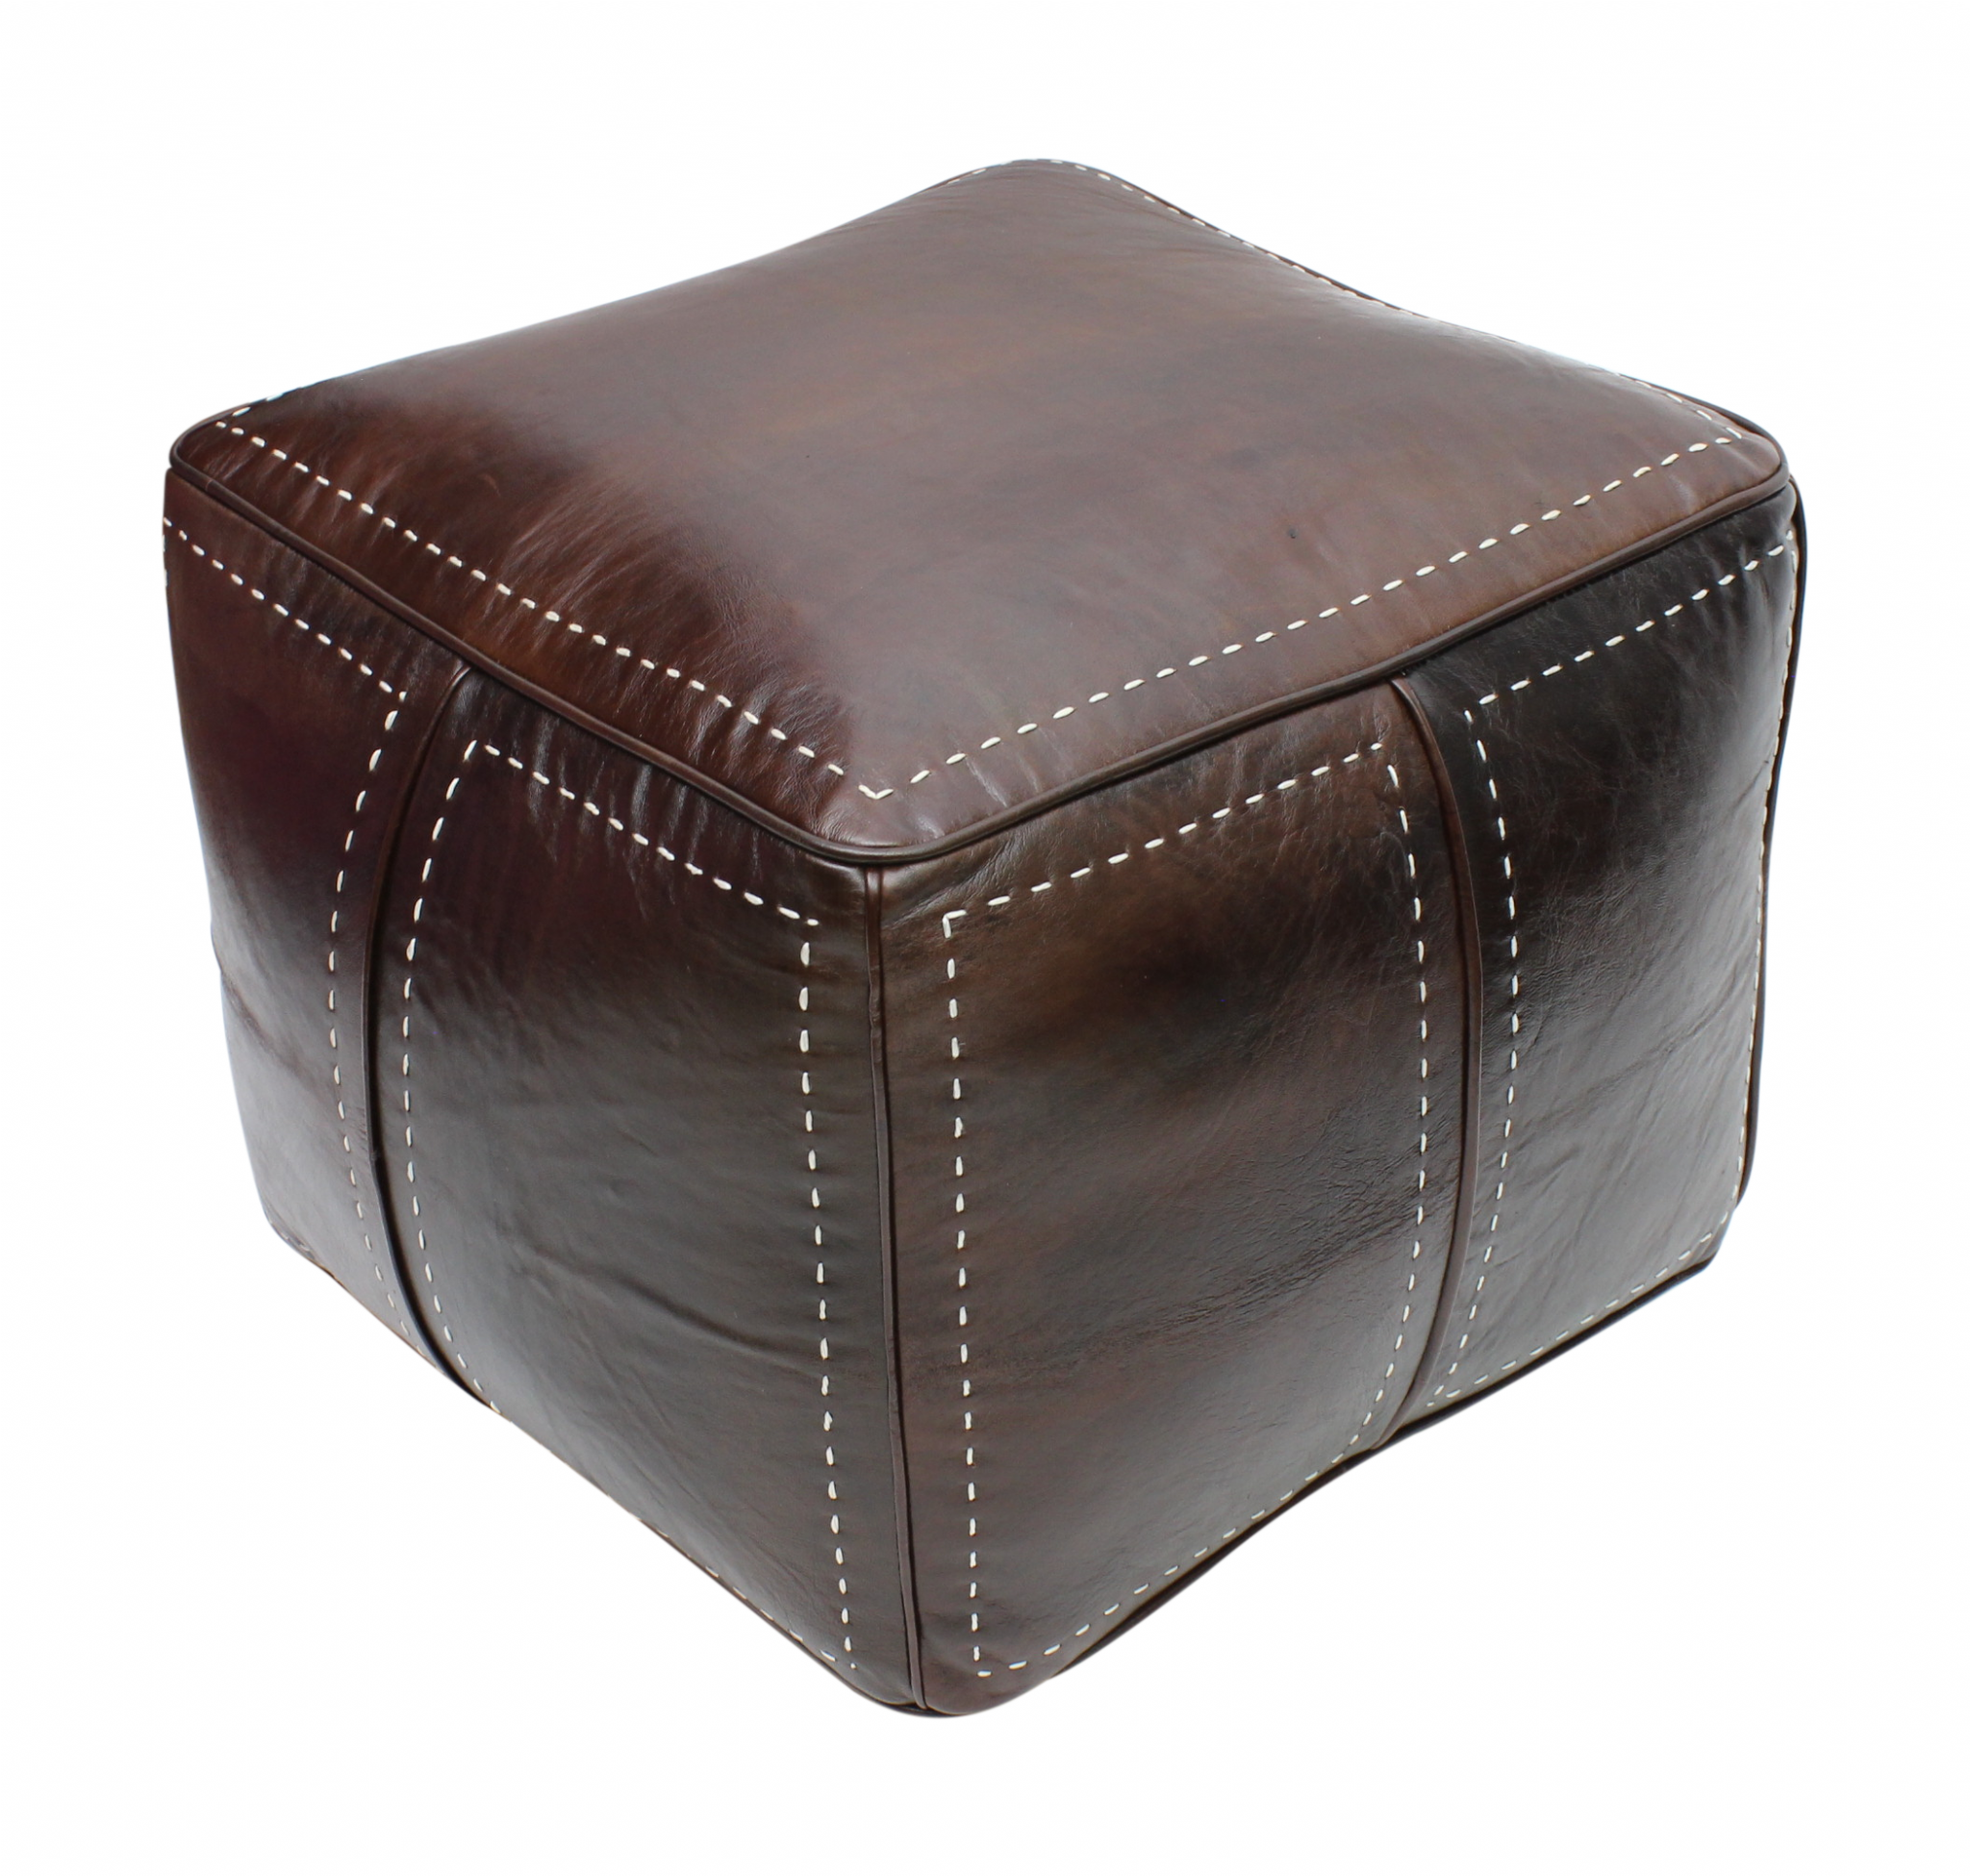 Strange Moroccan Square Pouffe Pouf Ottoman Footstool In Real Dark Brown Tan Leather 50X50X40 Cm 20X20X16 In Ncnpc Chair Design For Home Ncnpcorg